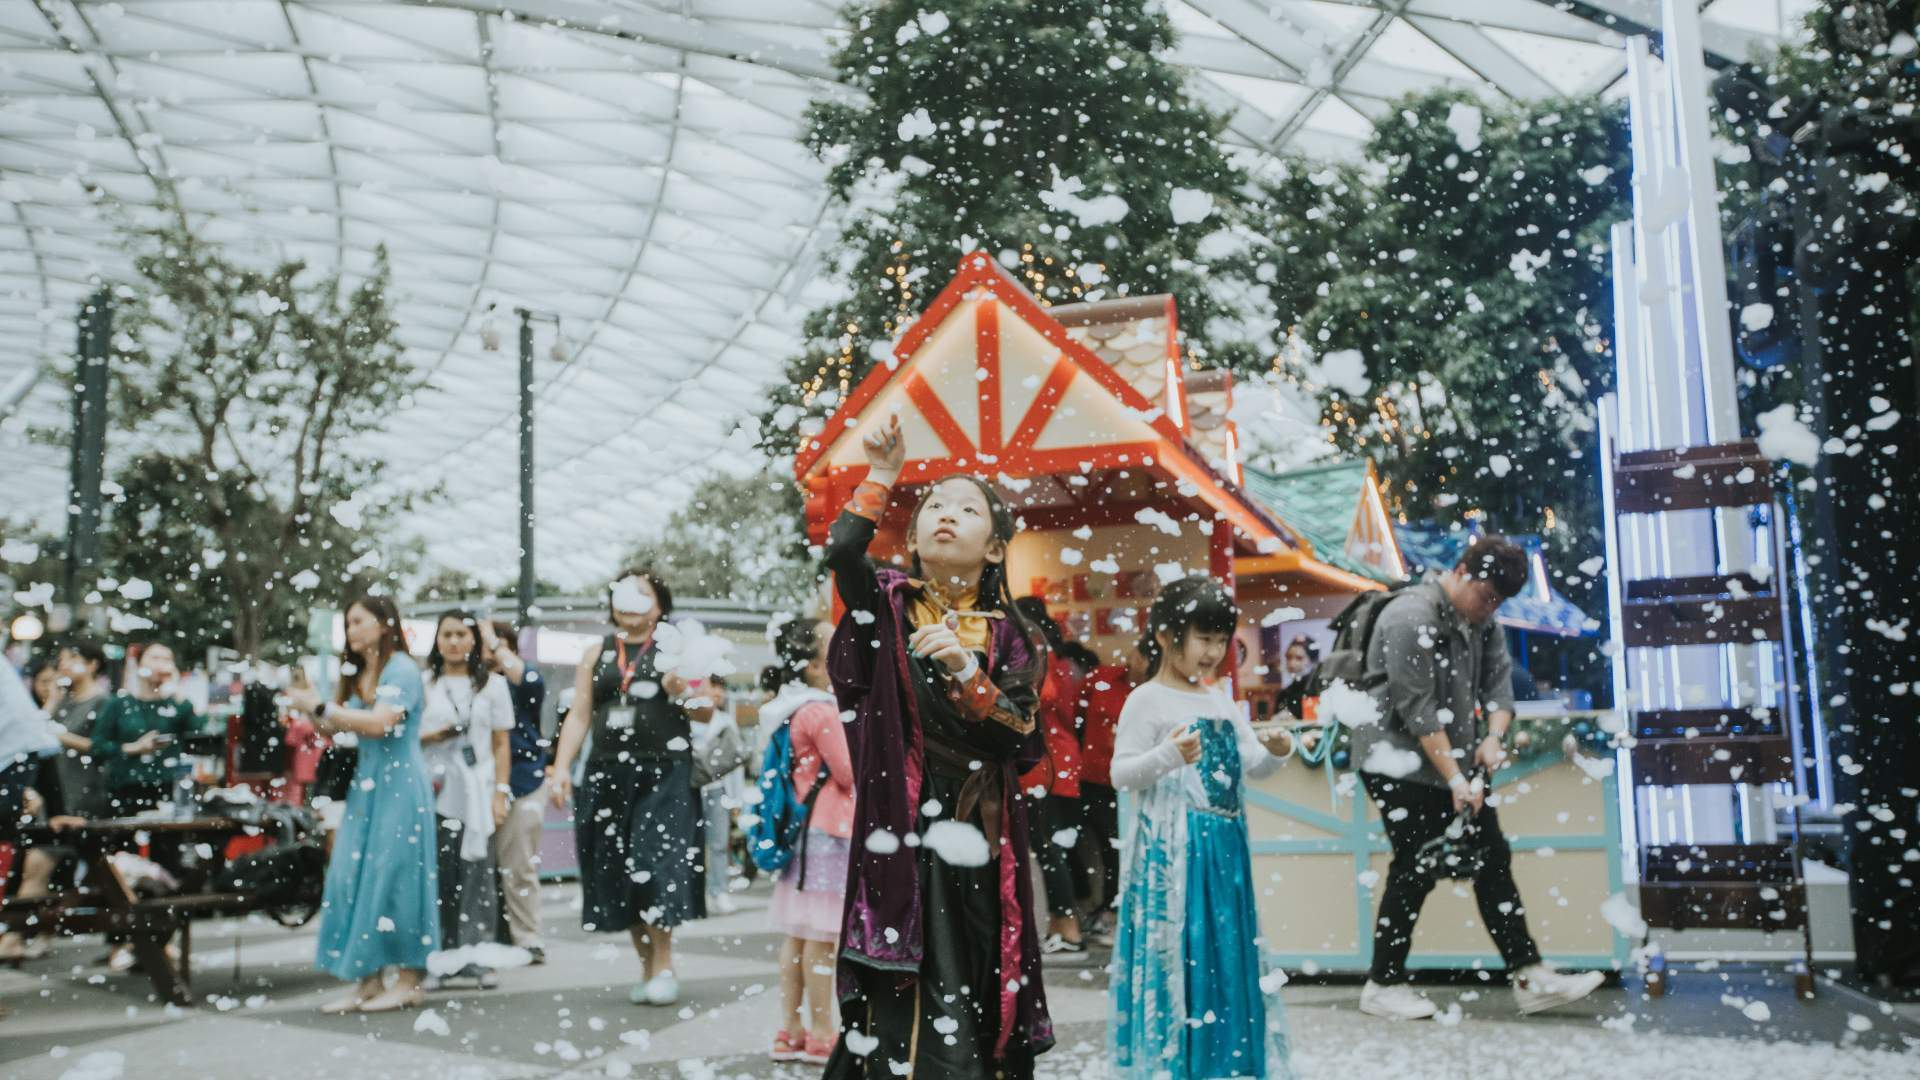 A Snow-Filled Winter Wonderland Has Descended on Singapore's Changi Airport